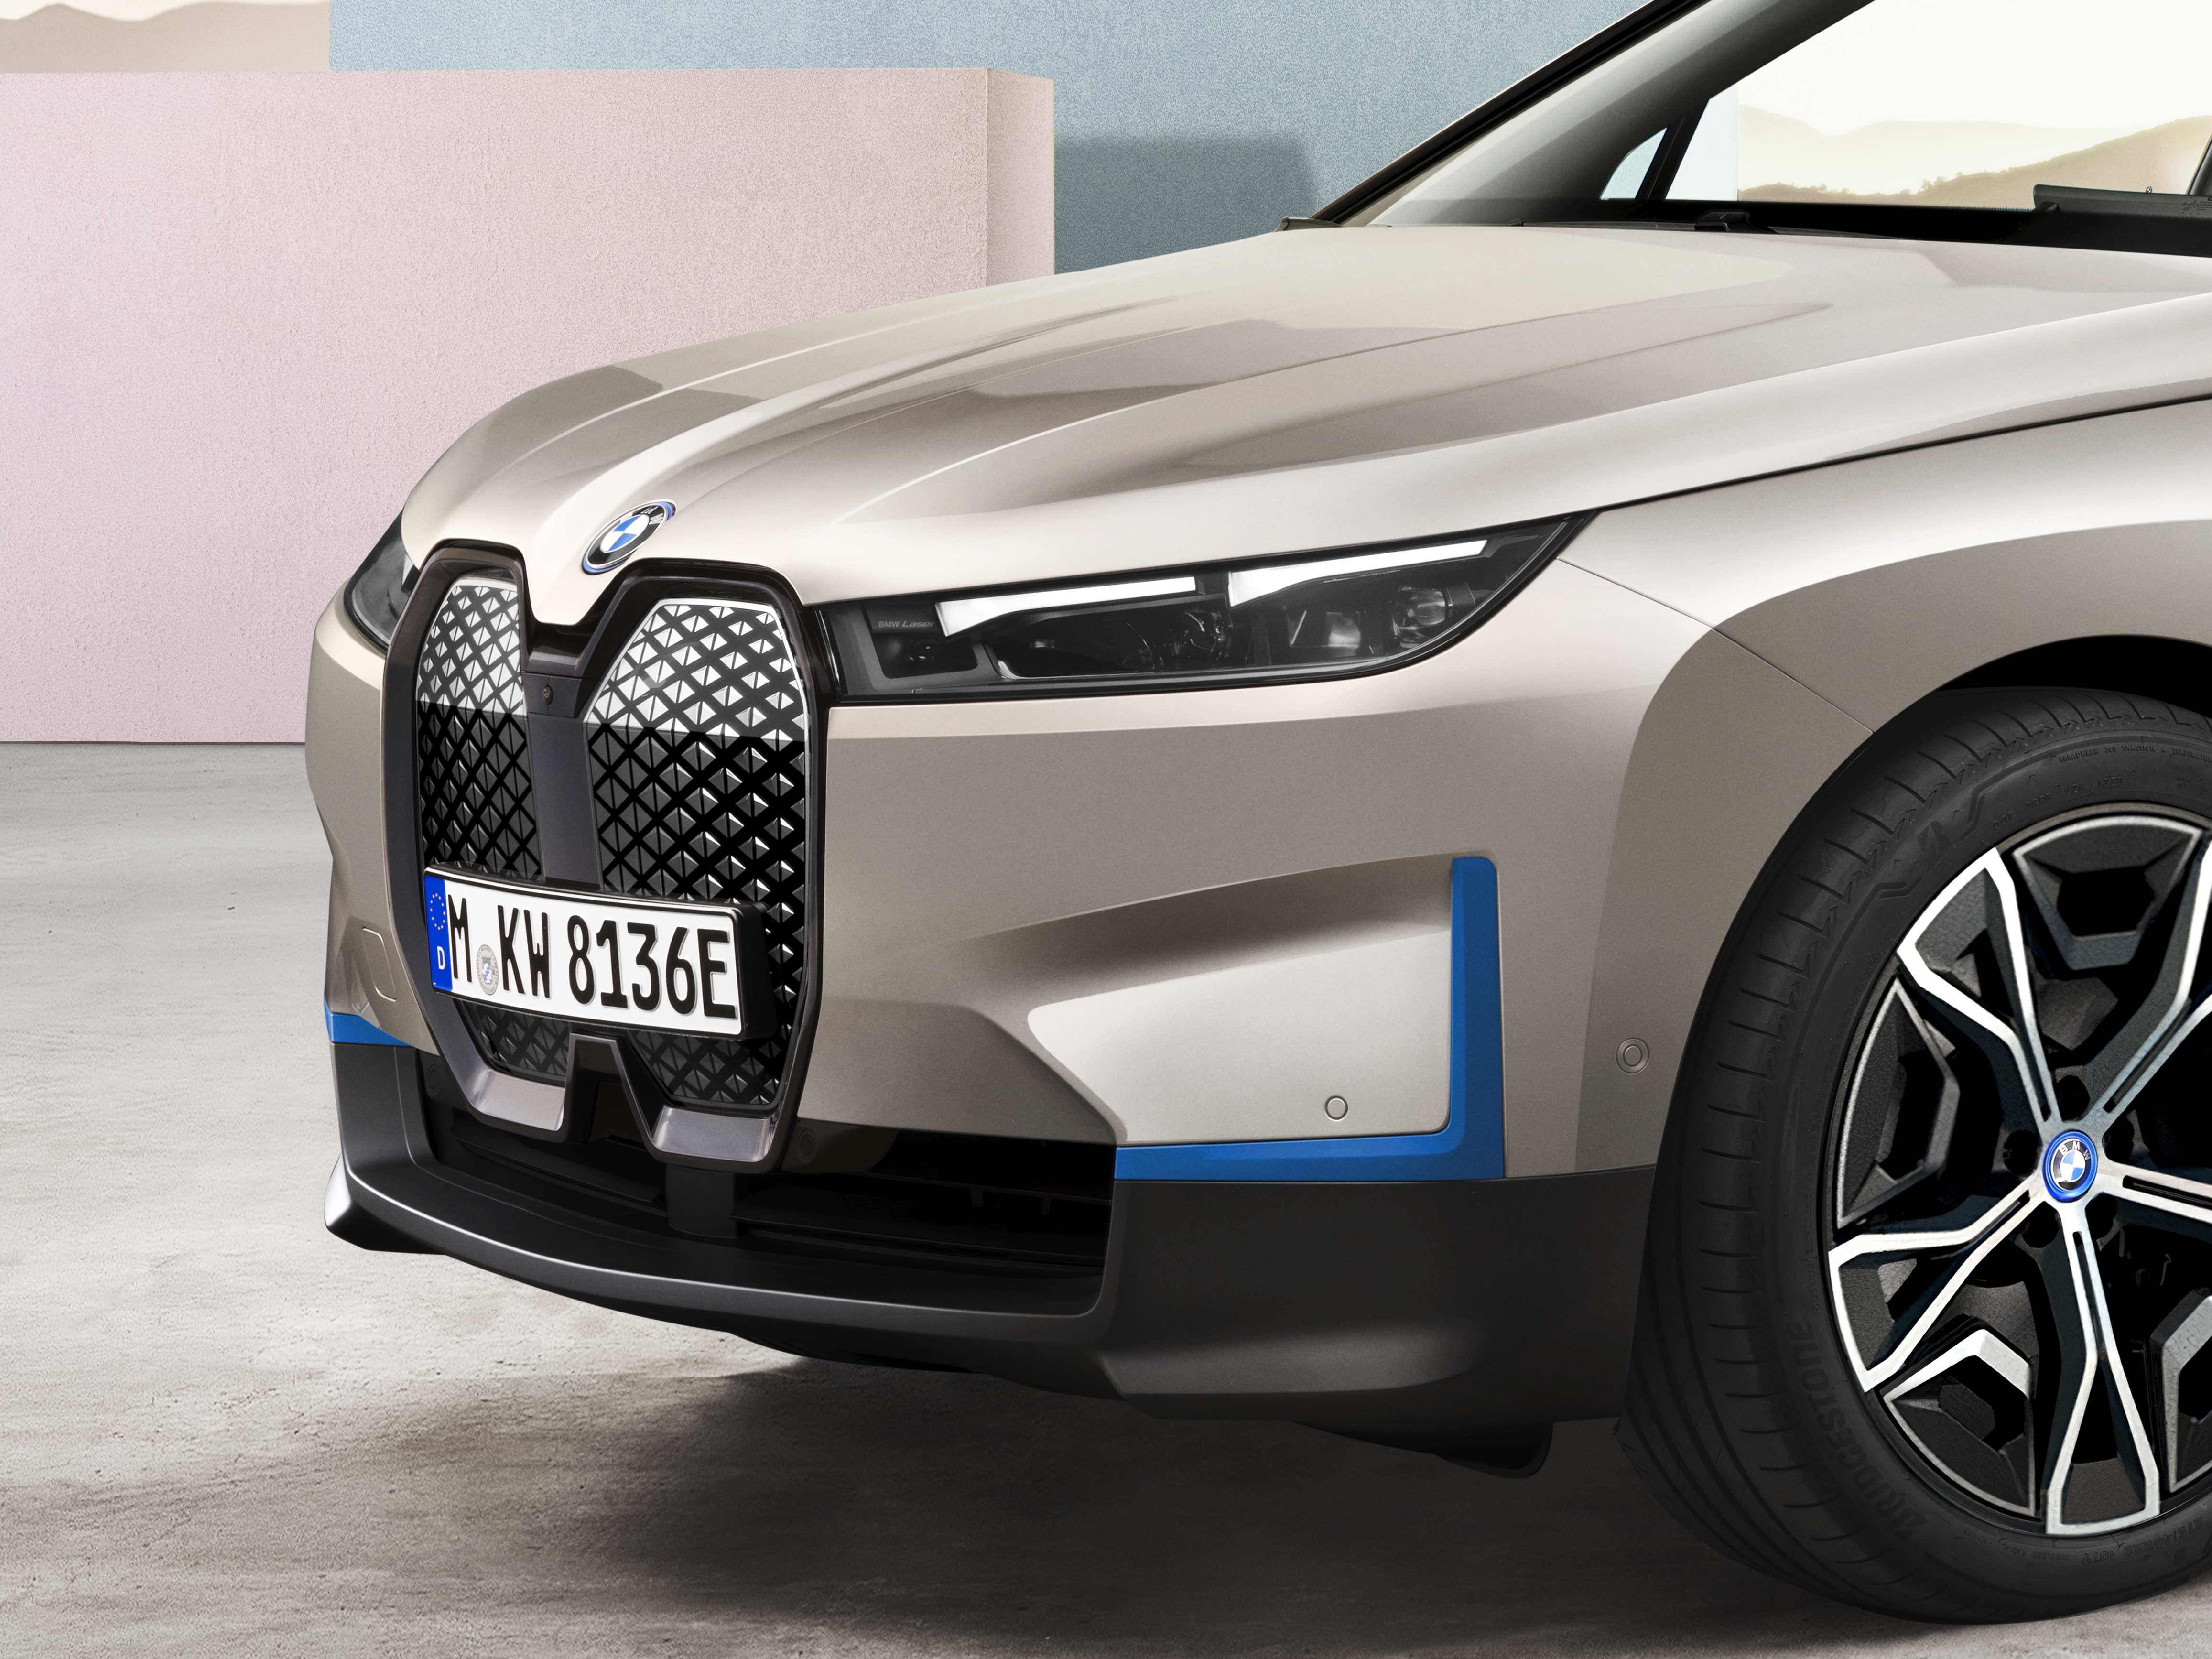 Bmw Launches Its New Flagship Ix Electric Suv With 300 Miles Of Range The Verge